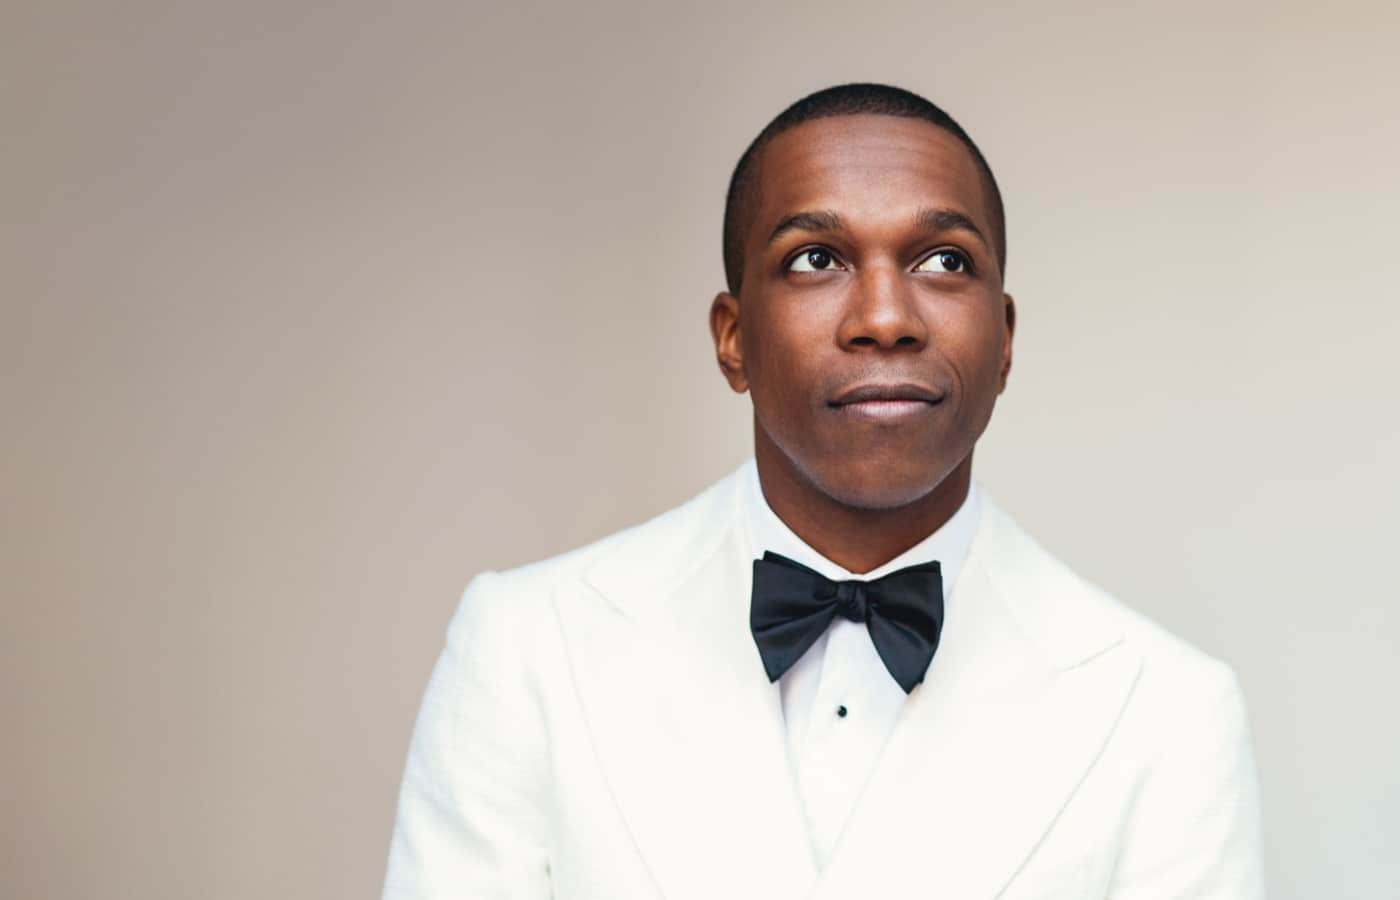 Photo of vocalist Leslie Odom, Jr. in a white tuxedo